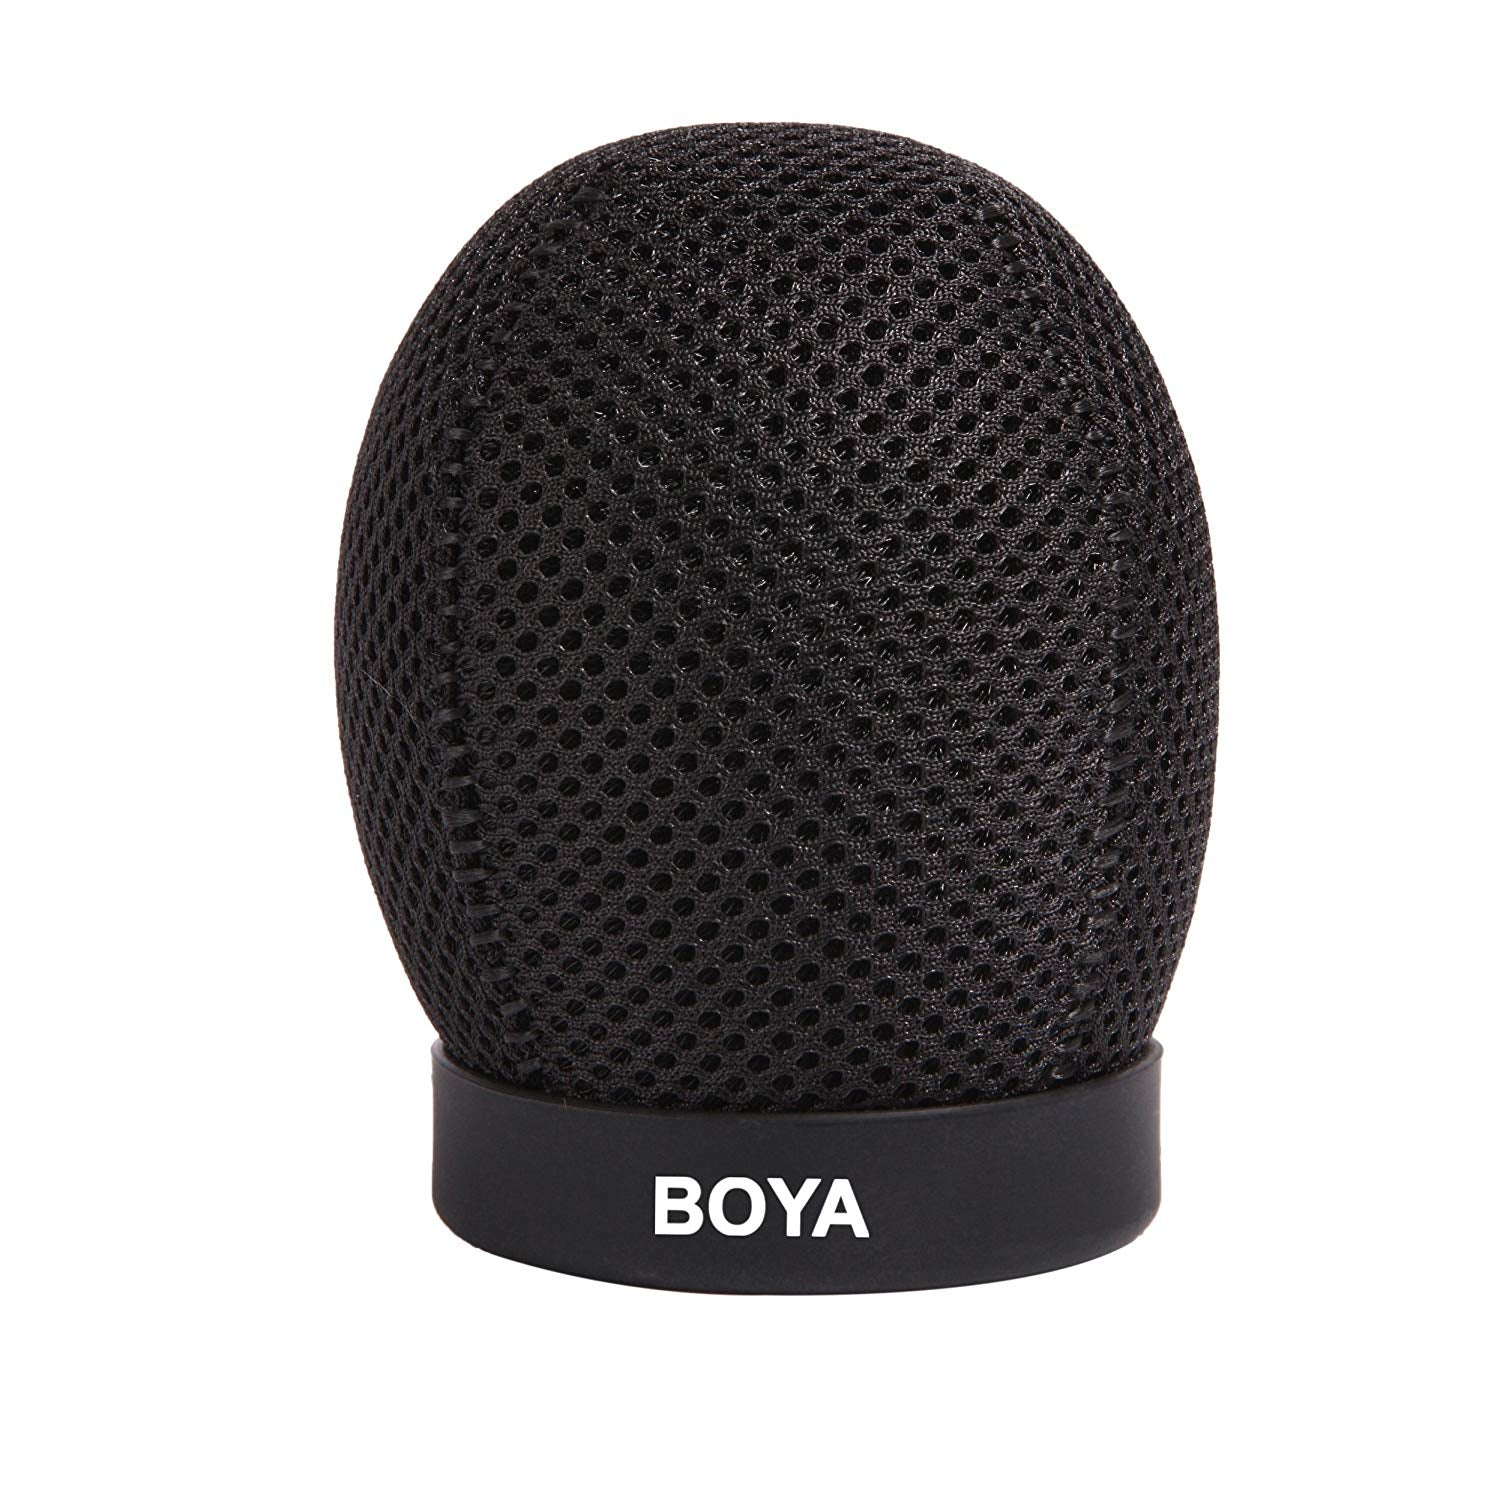 BOYA BY-T50 Inside Depth 50mm Professional Windshield for Shotgun Microphones